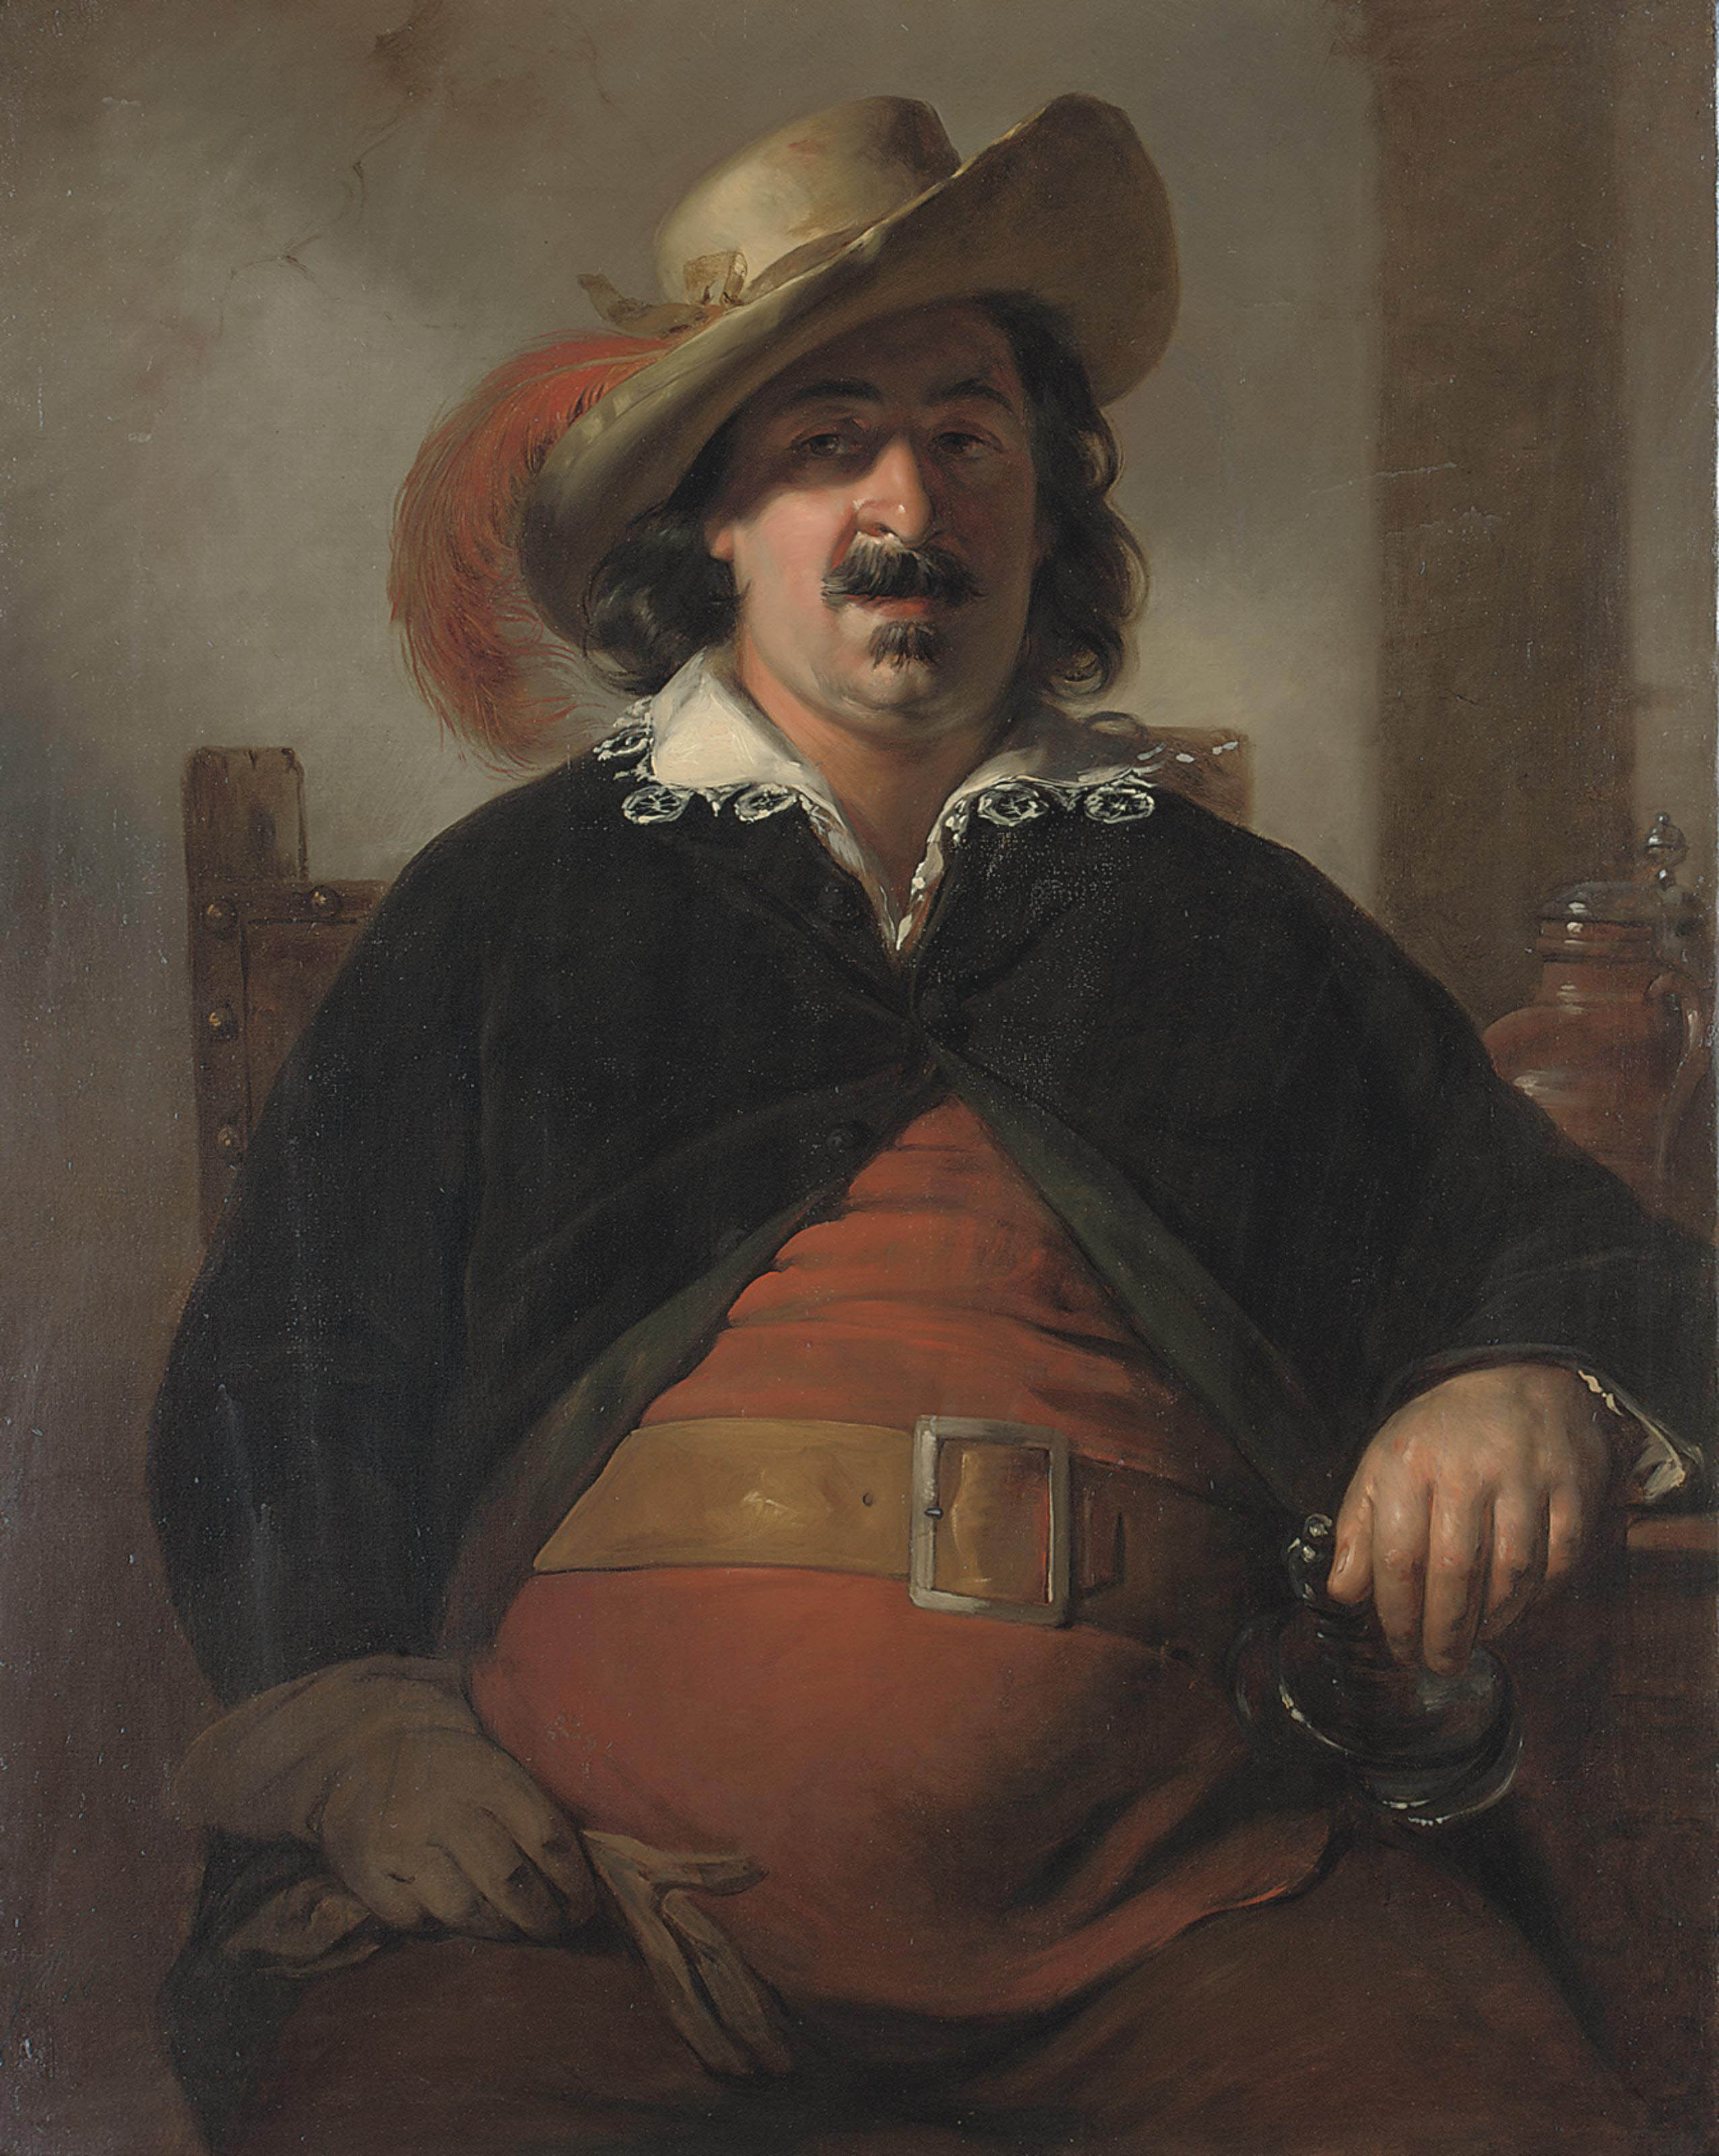 The painter Ignaz Raffalt as Falstaff